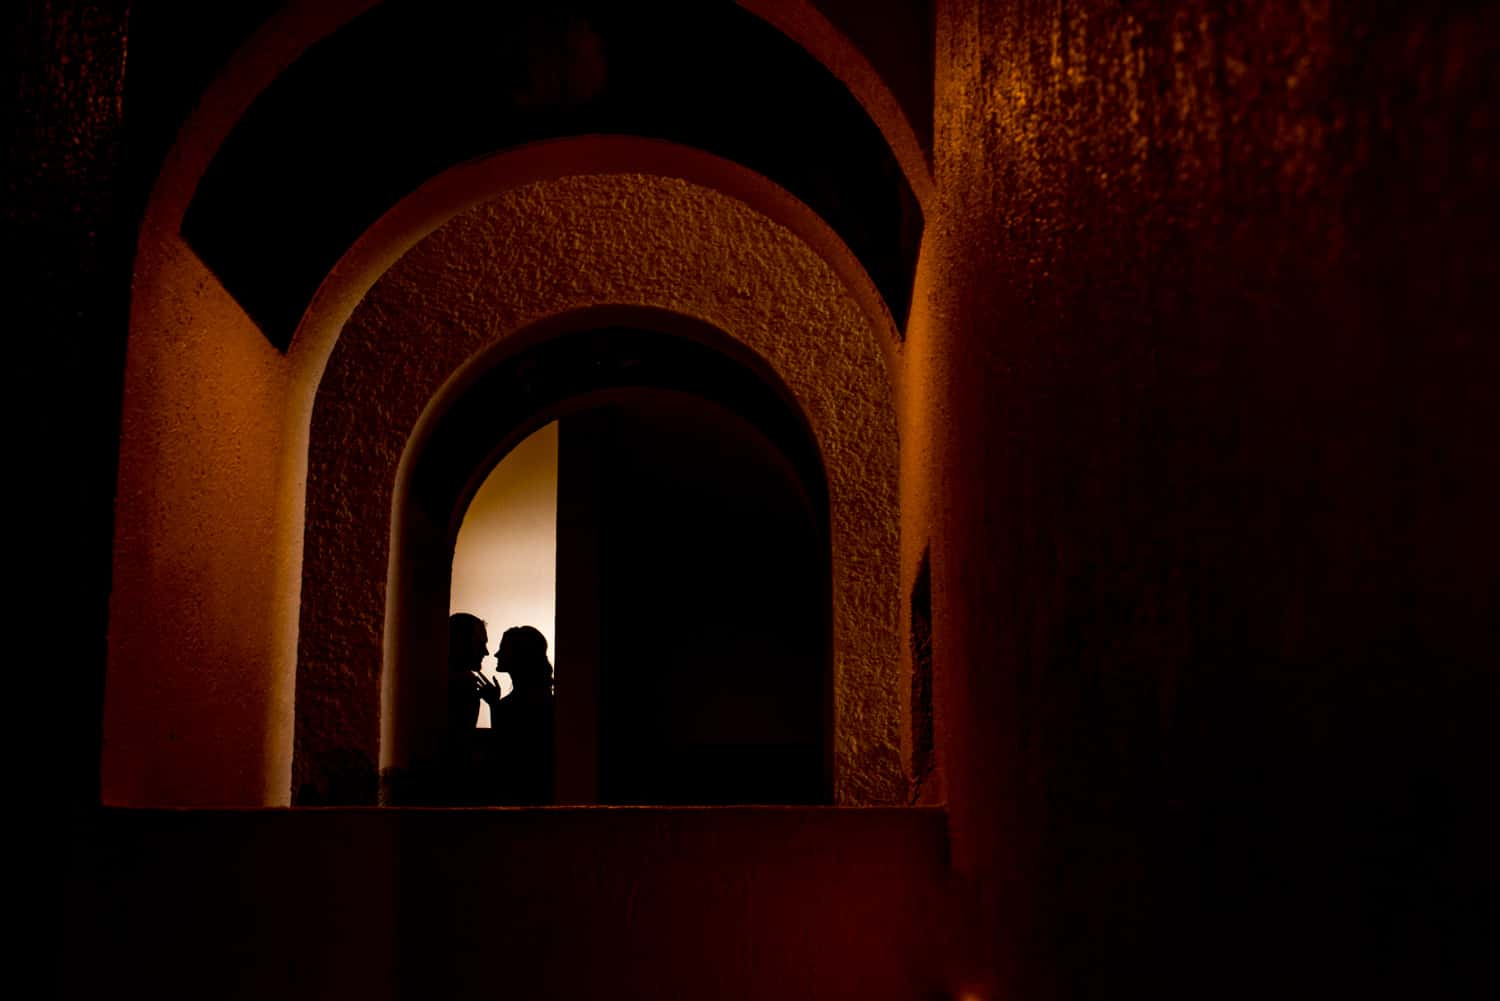 Silhouette portrait of couple under building arches